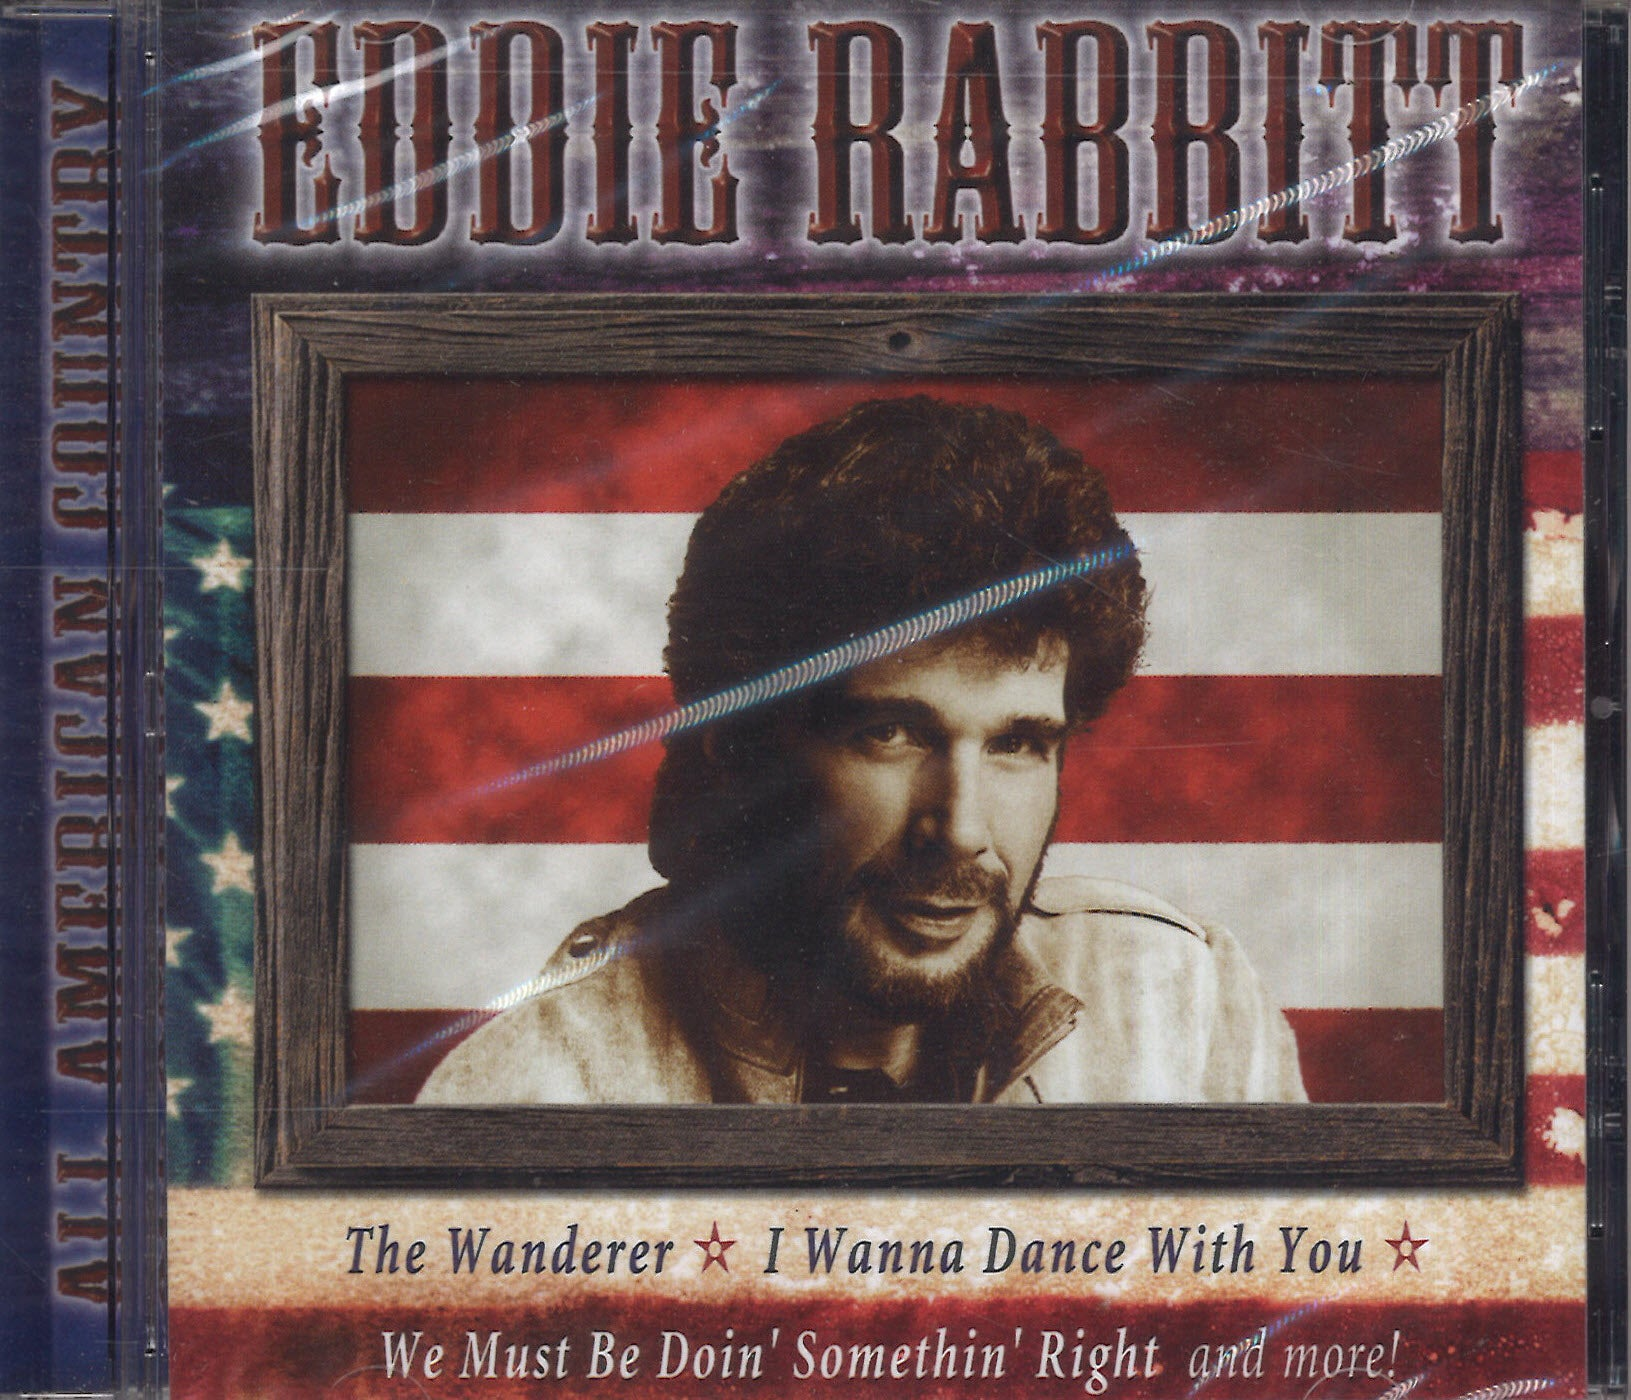 Eddie Rabbitt All American Country